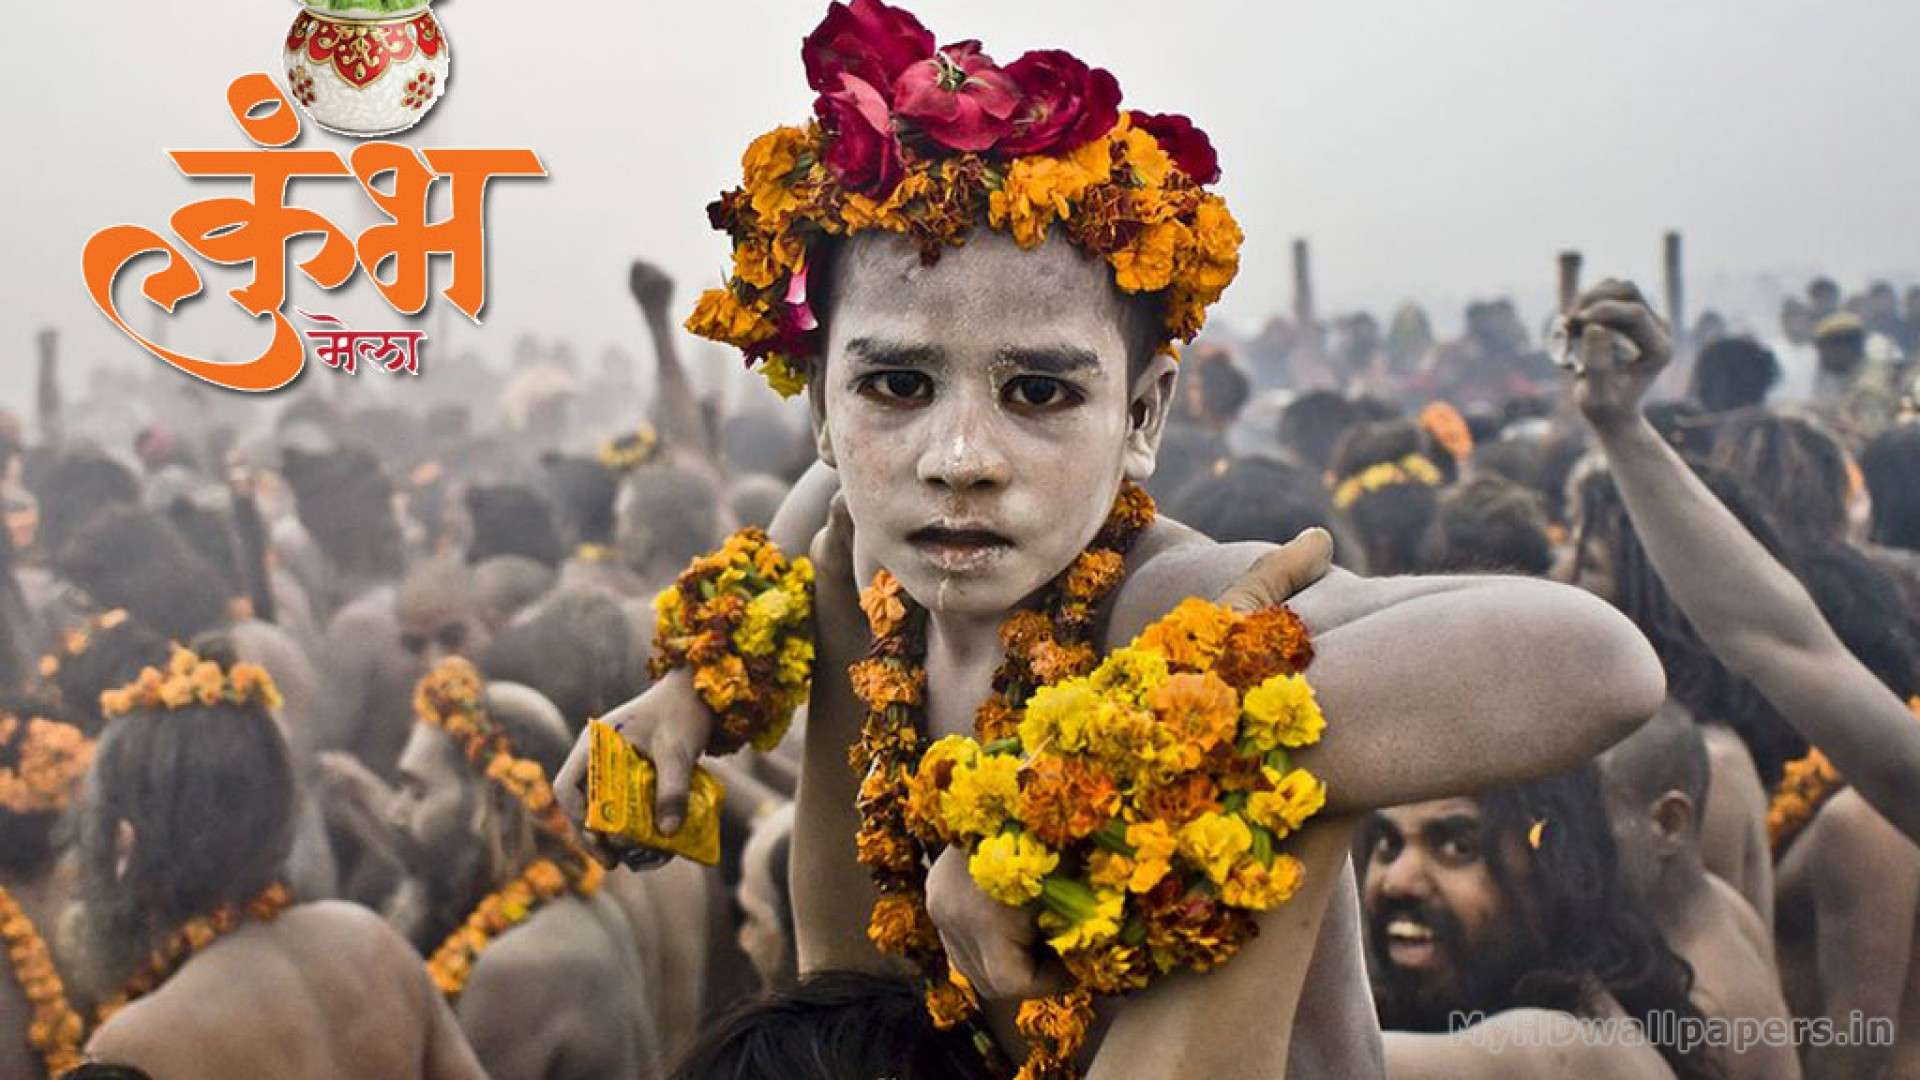 Kumbh Mela Hd Wallpapers : Hd Wallpapers